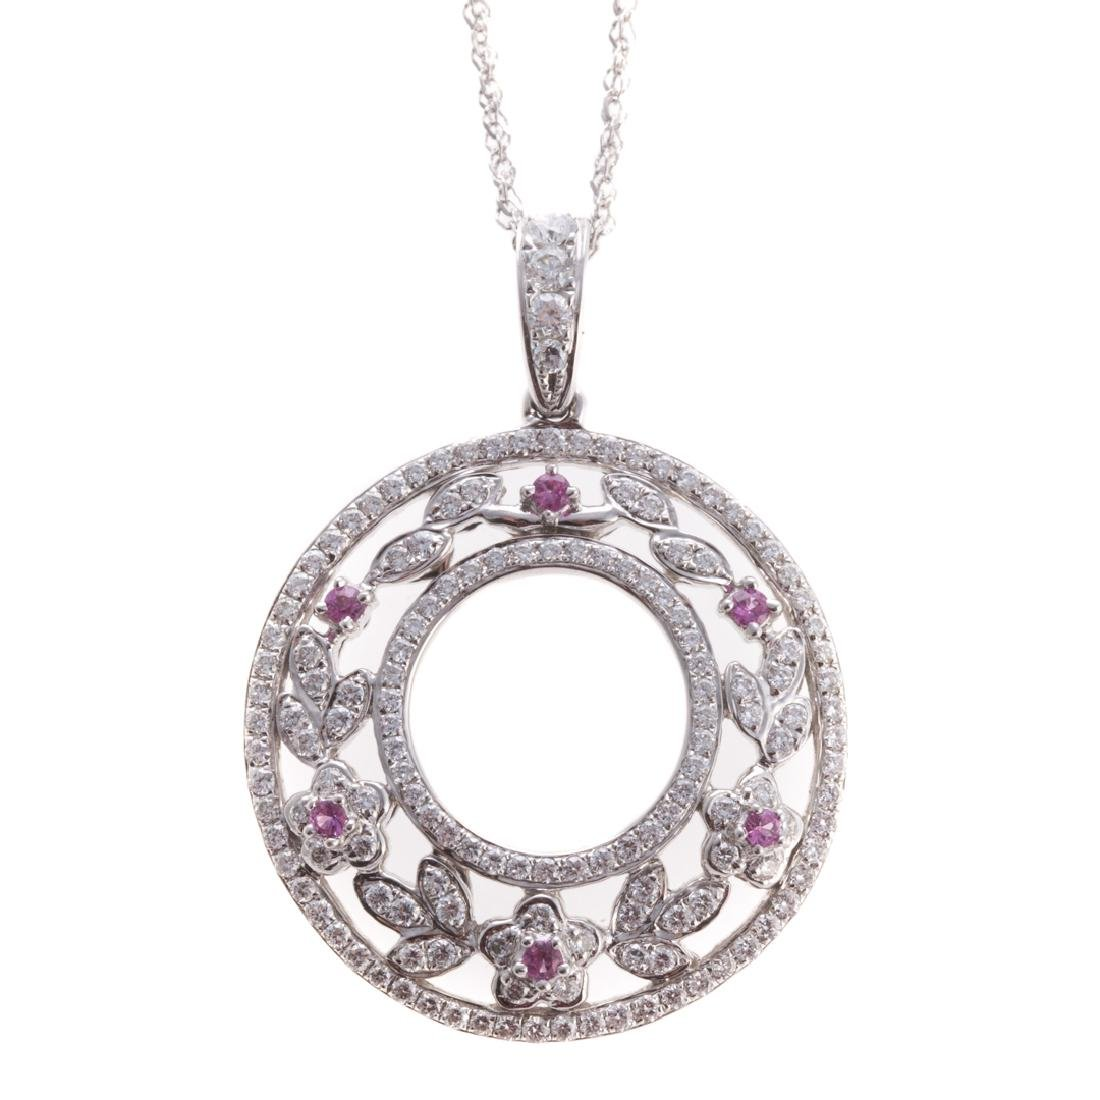 A Diamond & Pink Sapphire Pendant by C. Krypell